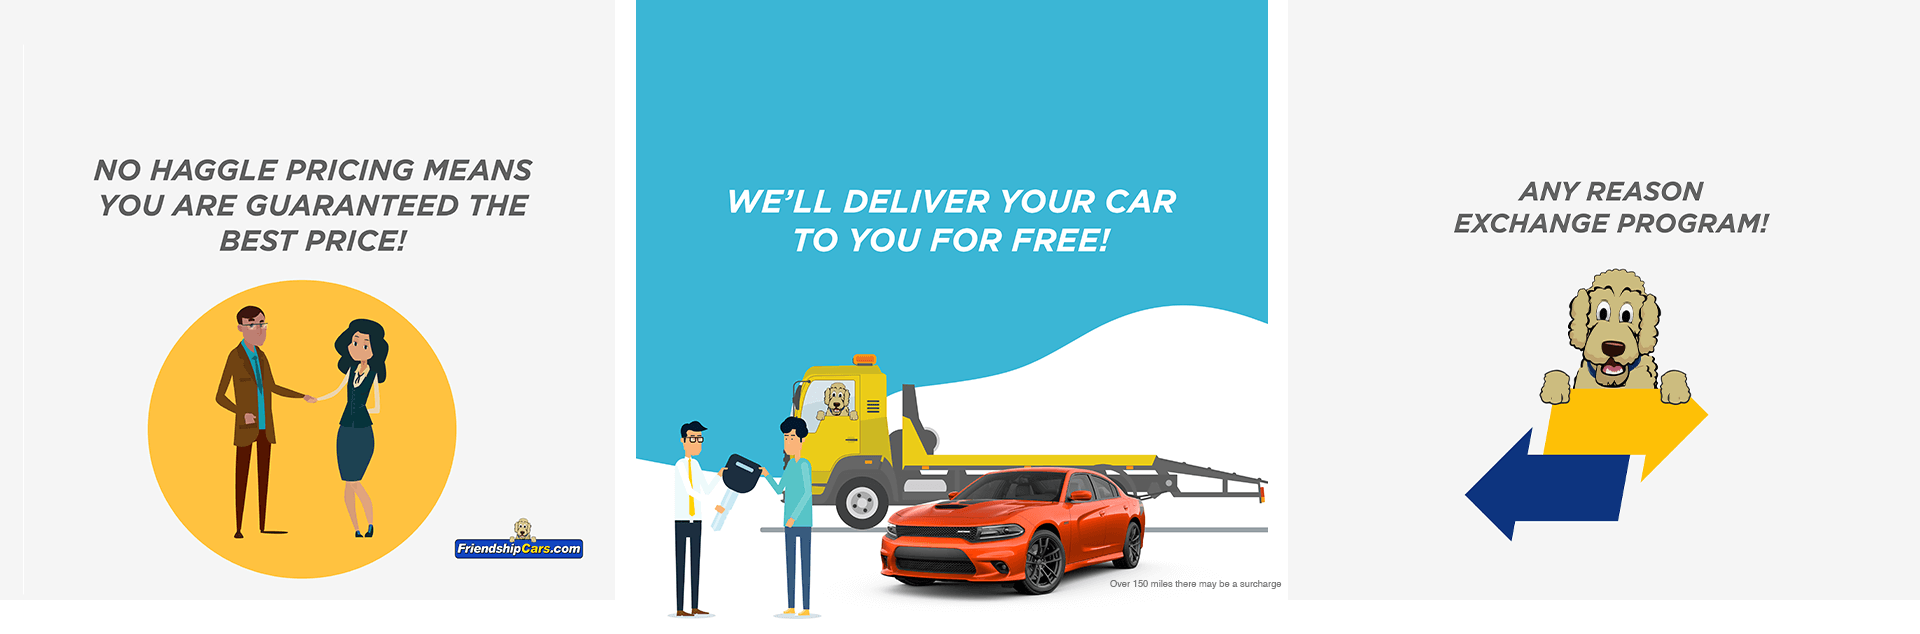 No Haggle Pricing Means You Are Guaranteed The Best Price! | We'll Deliver Your Car to you For Free! | Any Reason Exchange Program